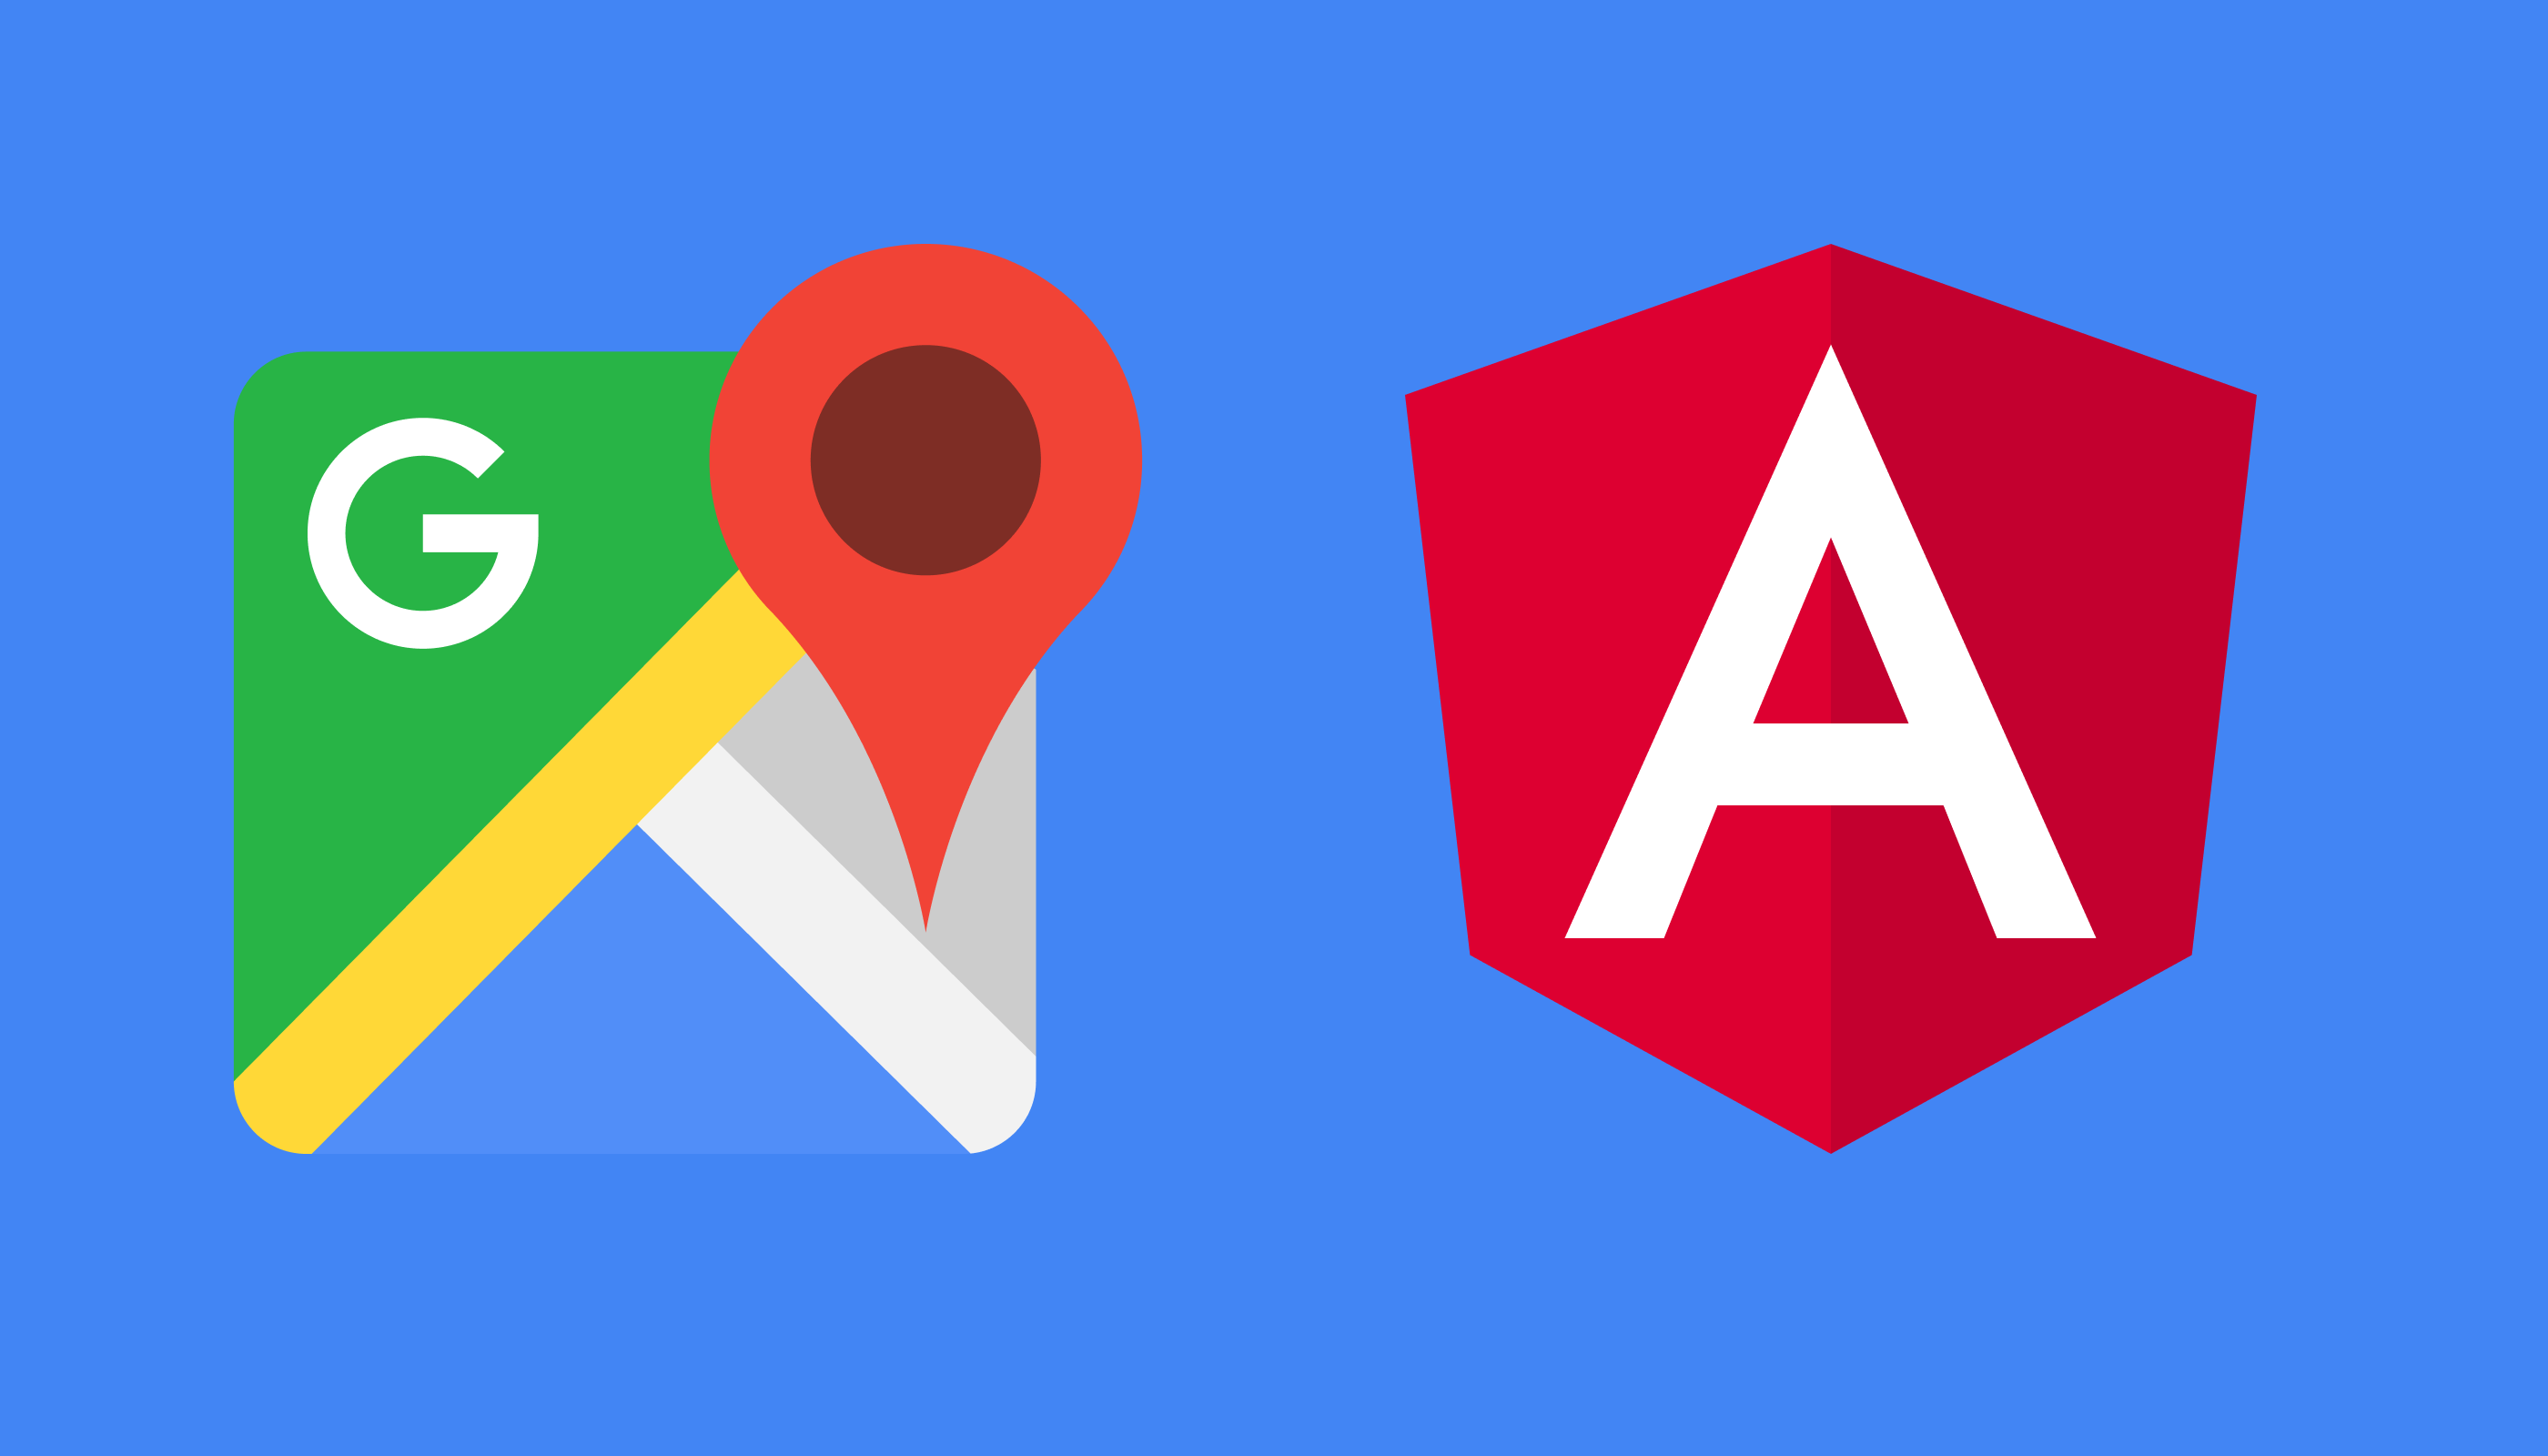 Setup Google Maps in an Angular App - Noteworthy - The ... on topographic maps, goolge maps, gppgle maps, aerial maps, aeronautical maps, android maps, bing maps, gogole maps, googie maps, online maps, msn maps, ipad maps, stanford university maps, iphone maps, googlr maps, road map usa states maps, search maps, microsoft maps, amazon fire phone maps, waze maps,